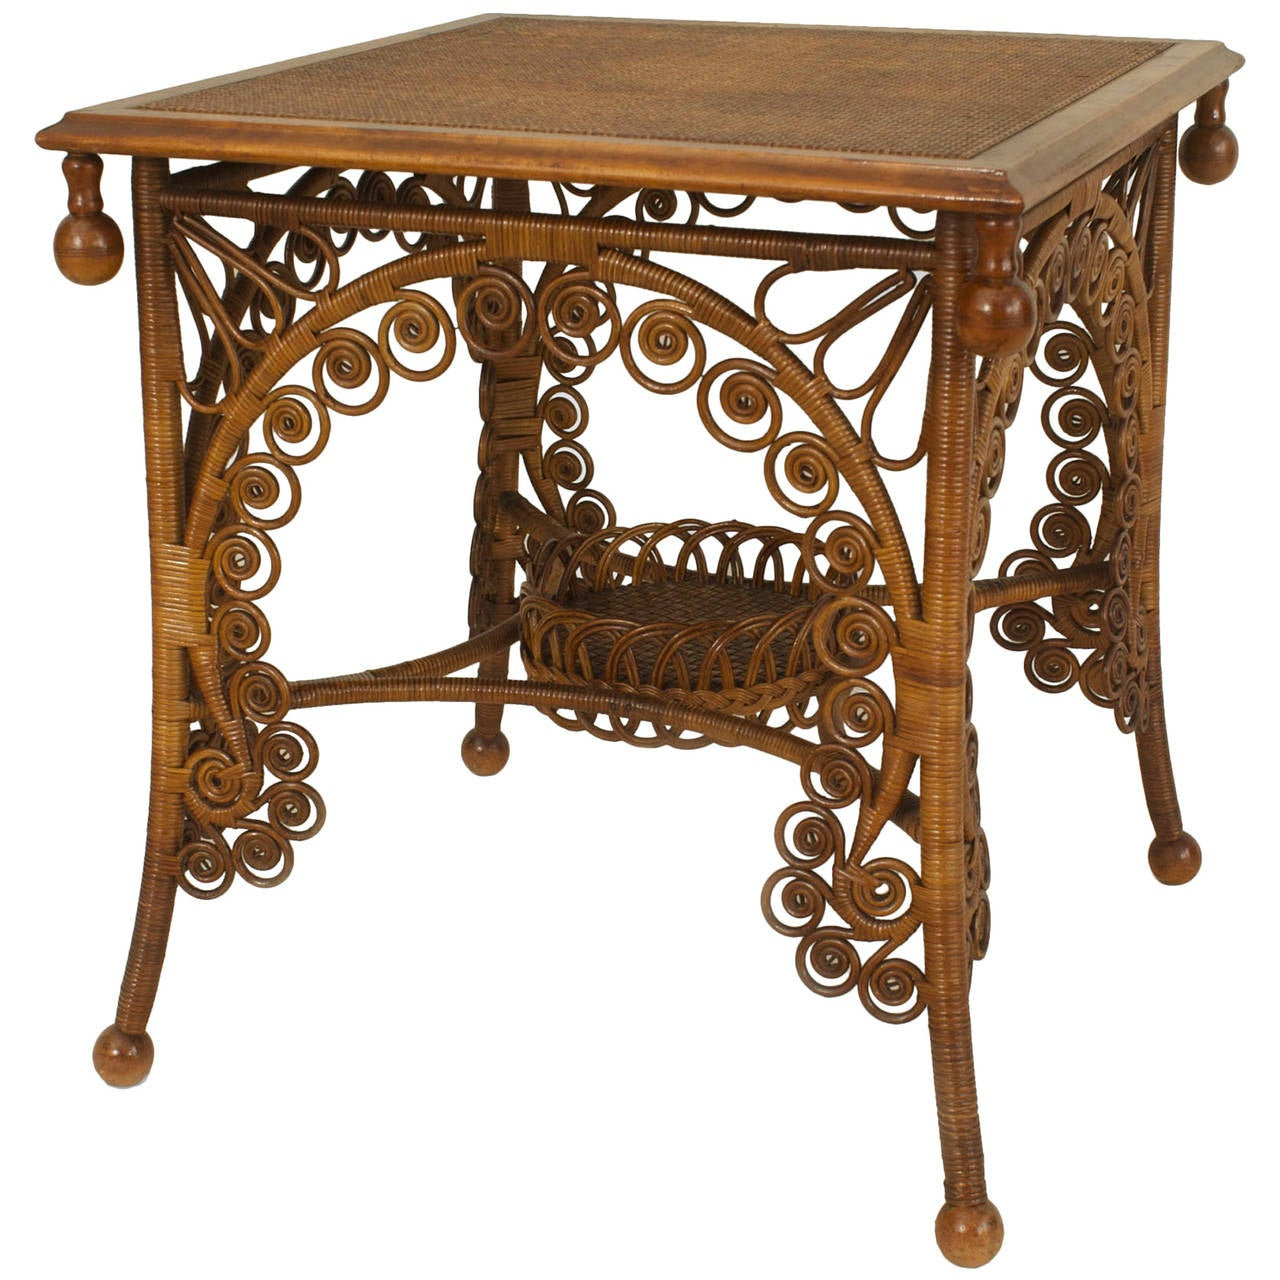 19th century american scrolling natural wicker end table for American rattan furniture manufacturer